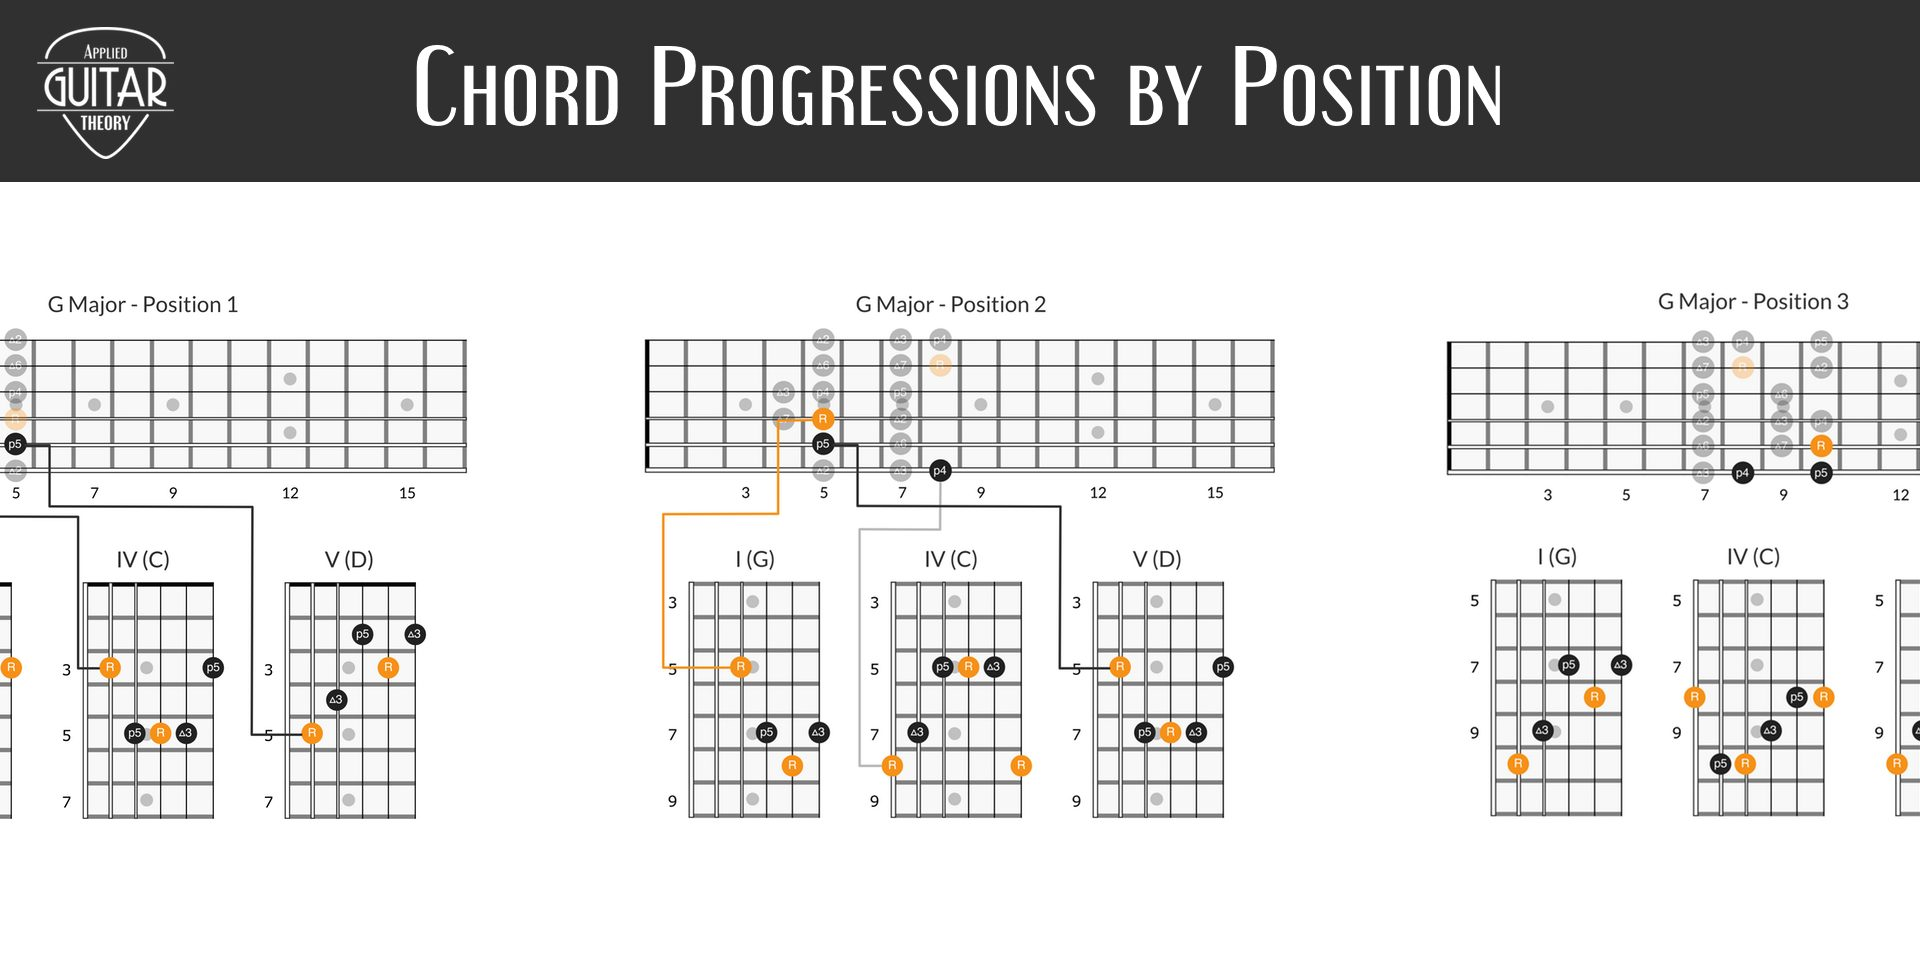 Chord progressions by position (I-IV-V)